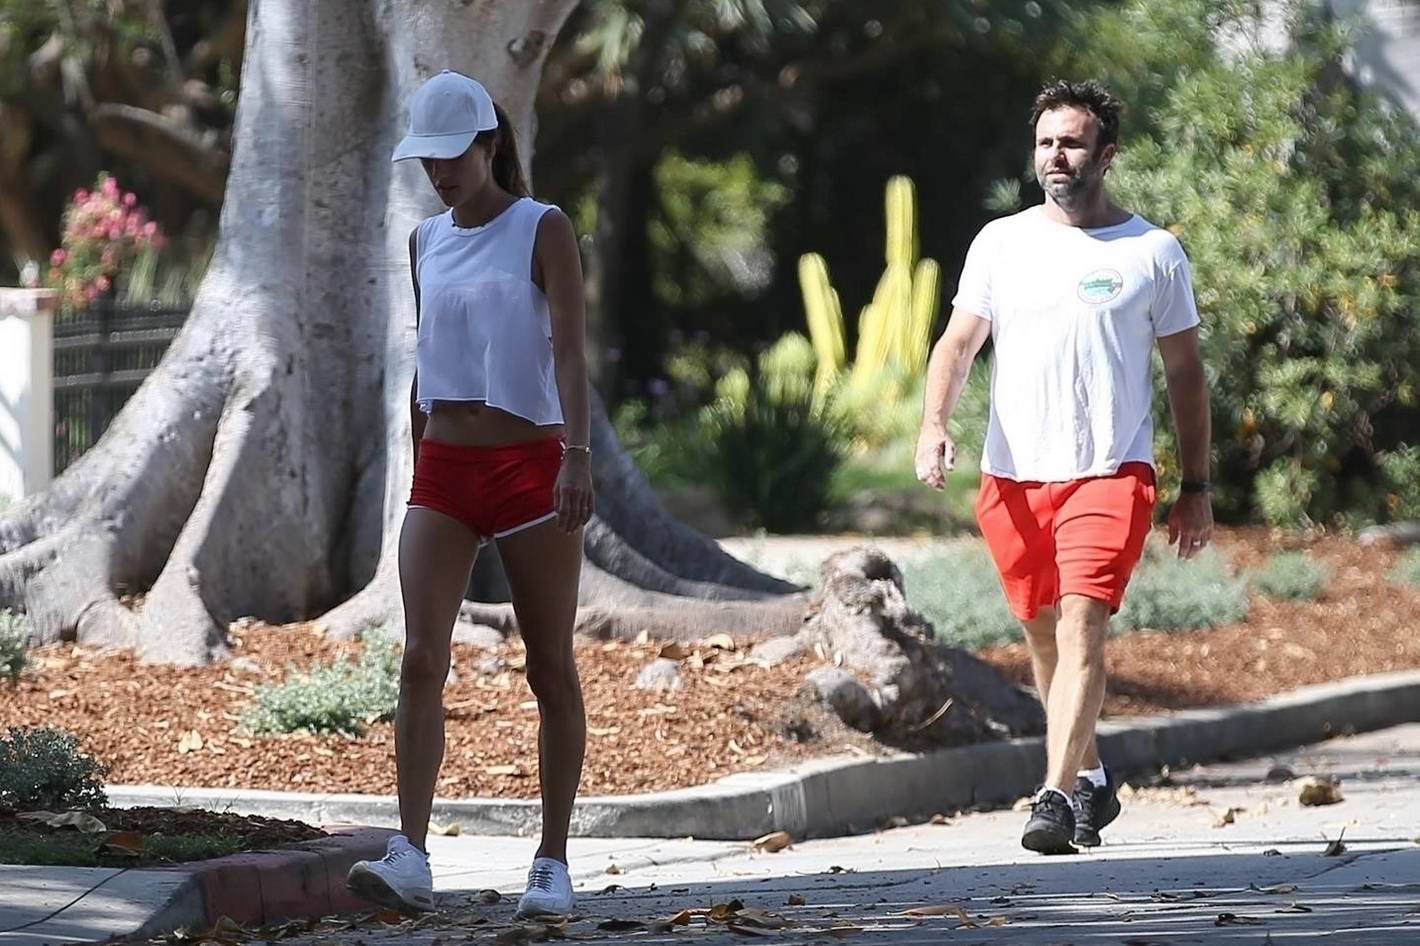 Alessandra Ambrosio out for a walk with her Husband in Brentwood, Los Angeles